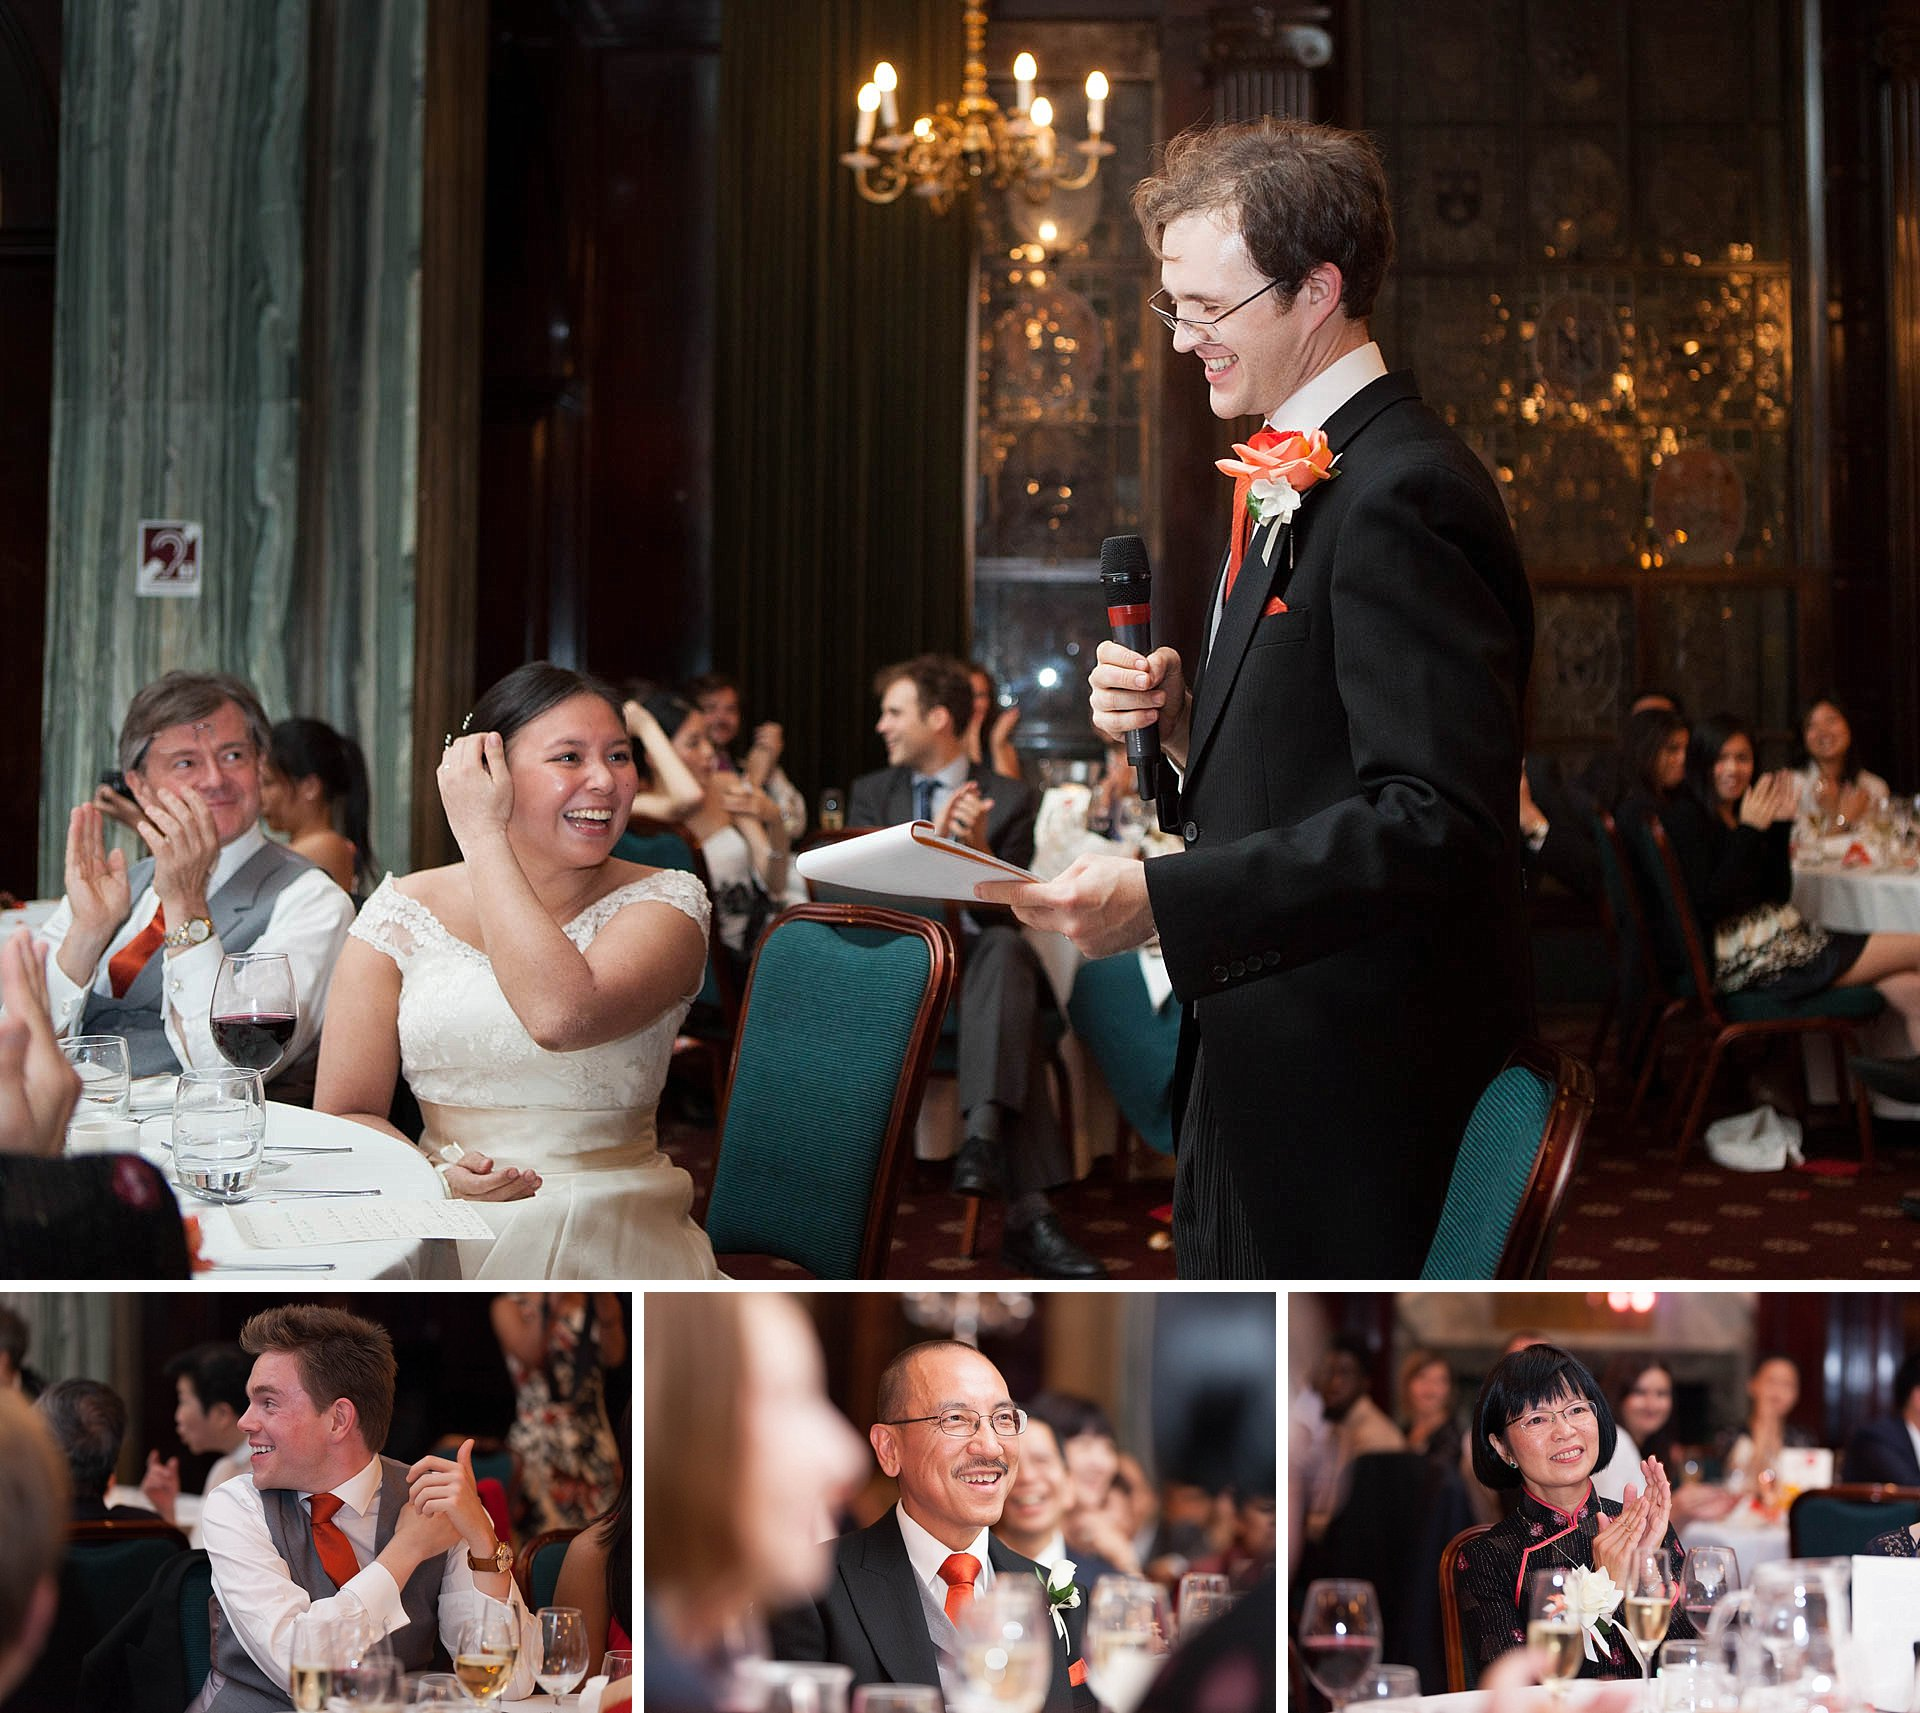 Wedding speeches at The Law Society